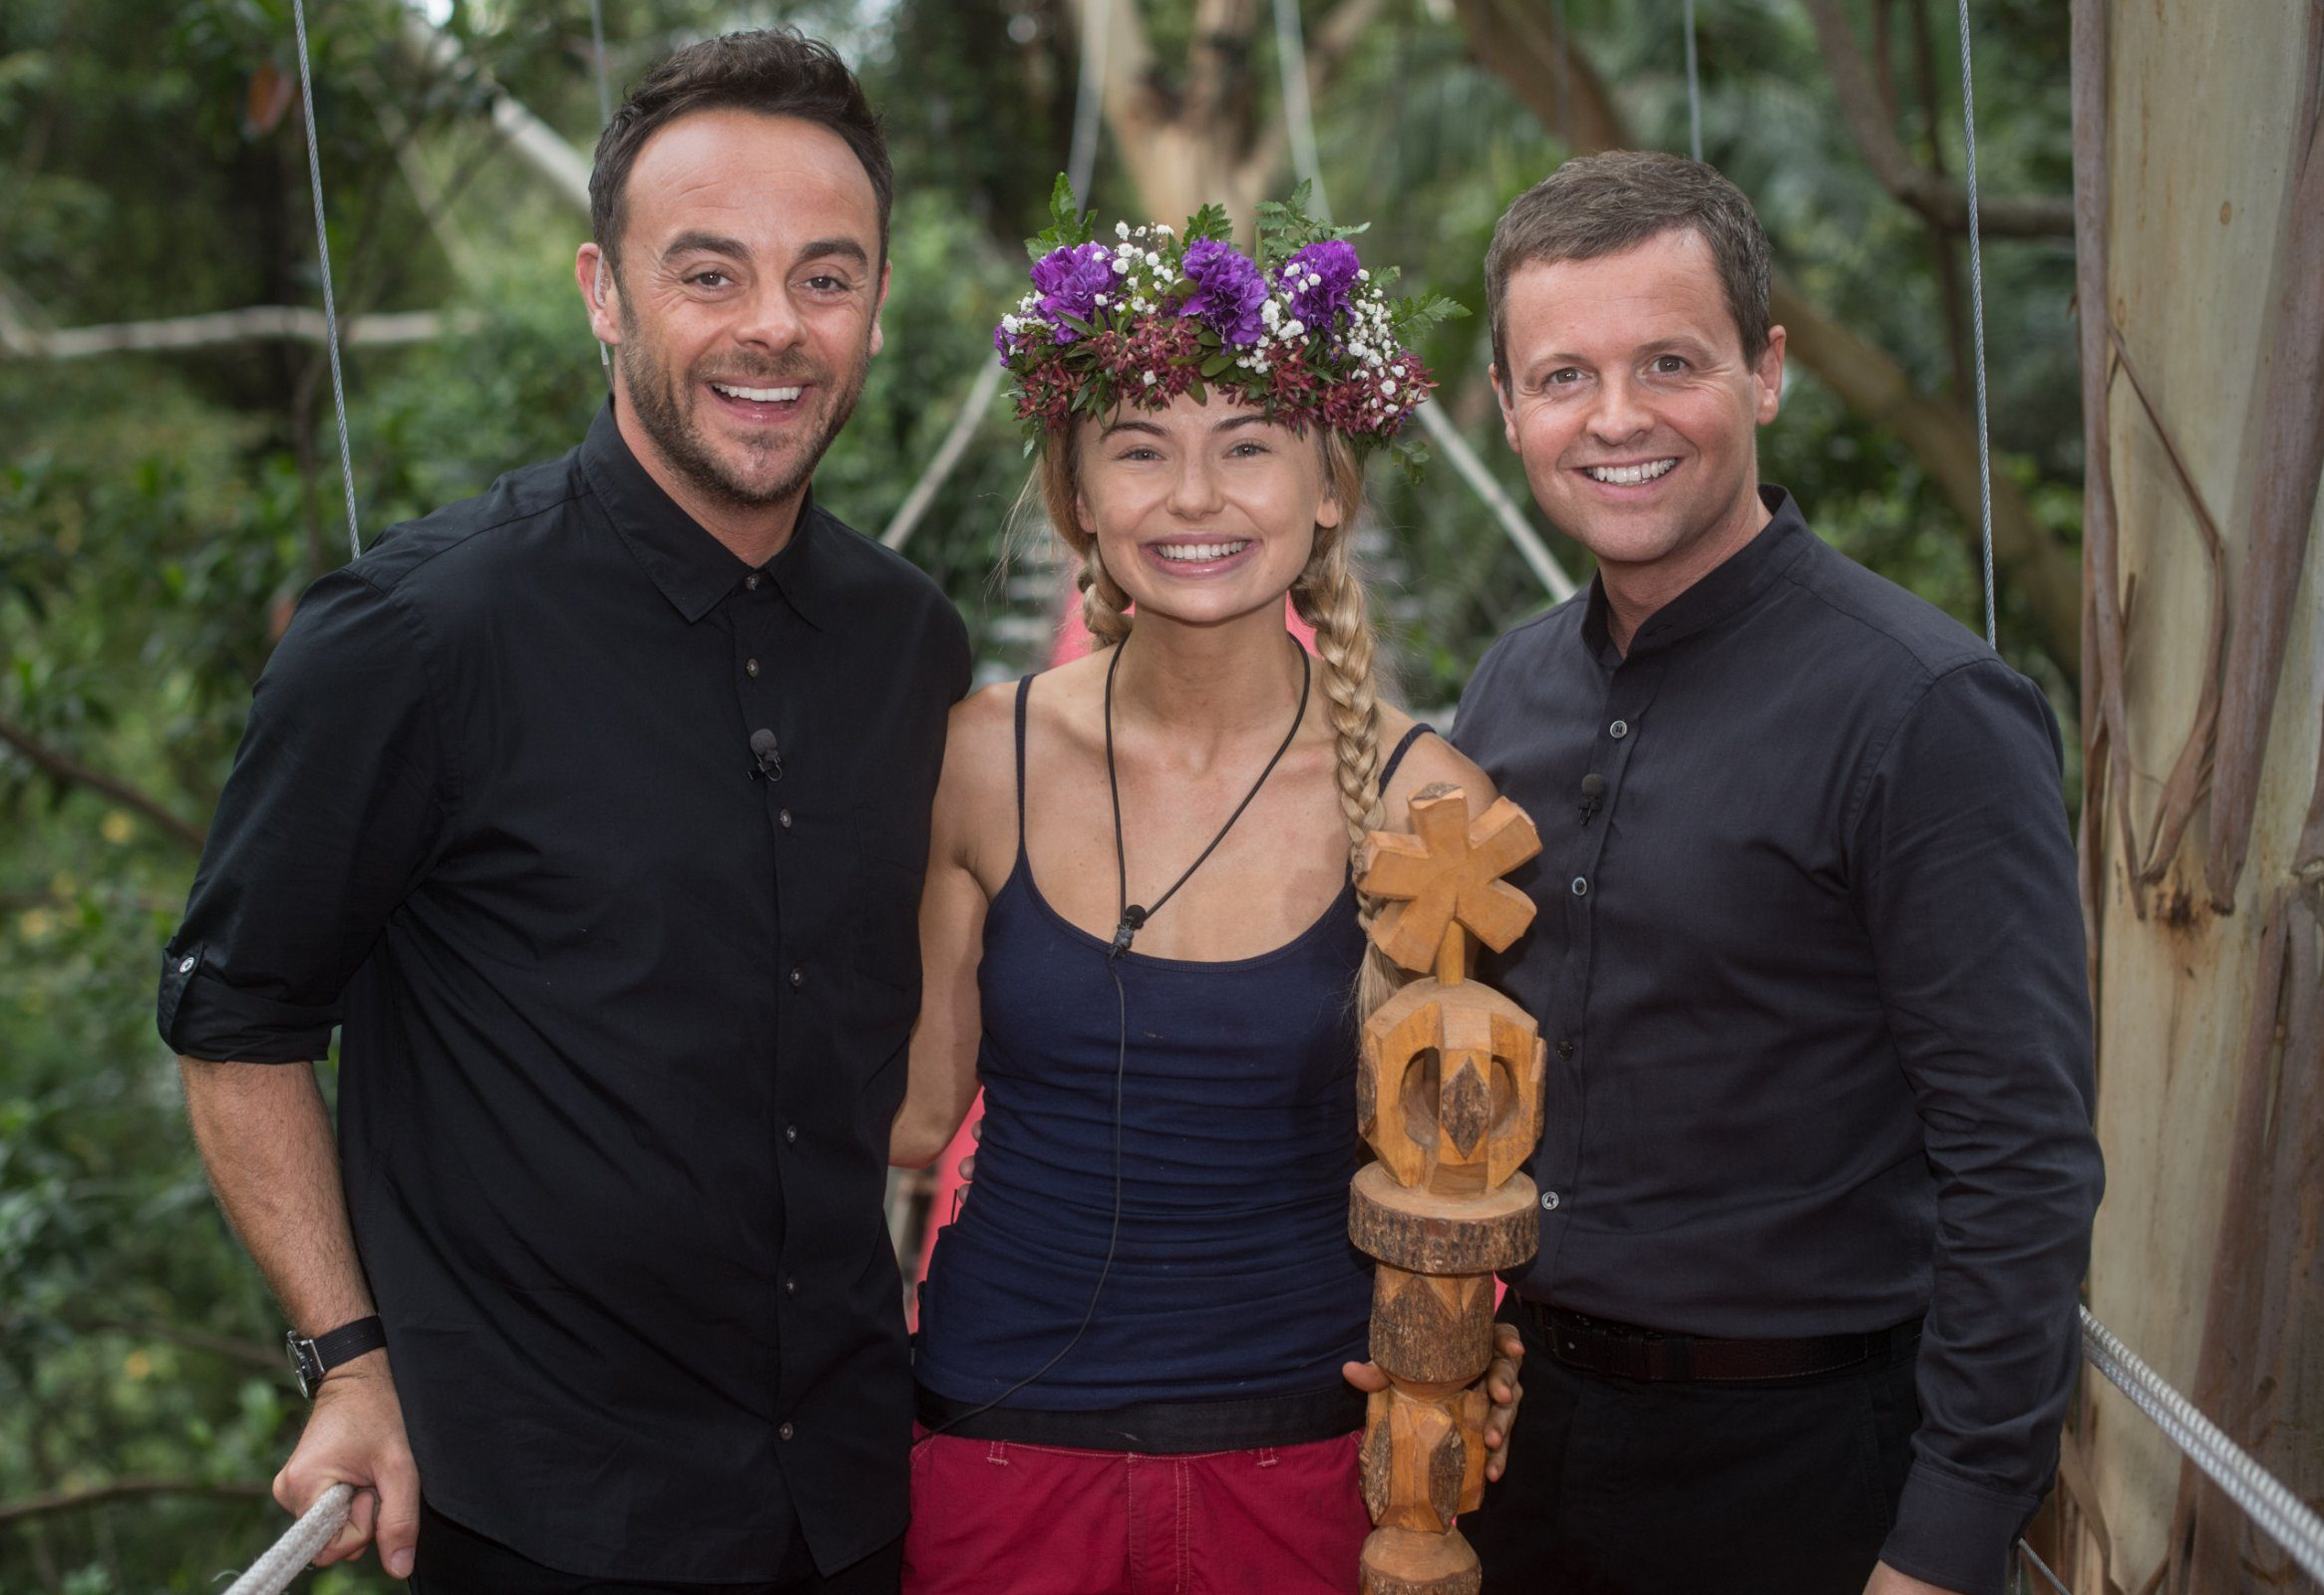 I'm A Celebrity Get Me Out Of Here crowns Georgia Toffolo the winner